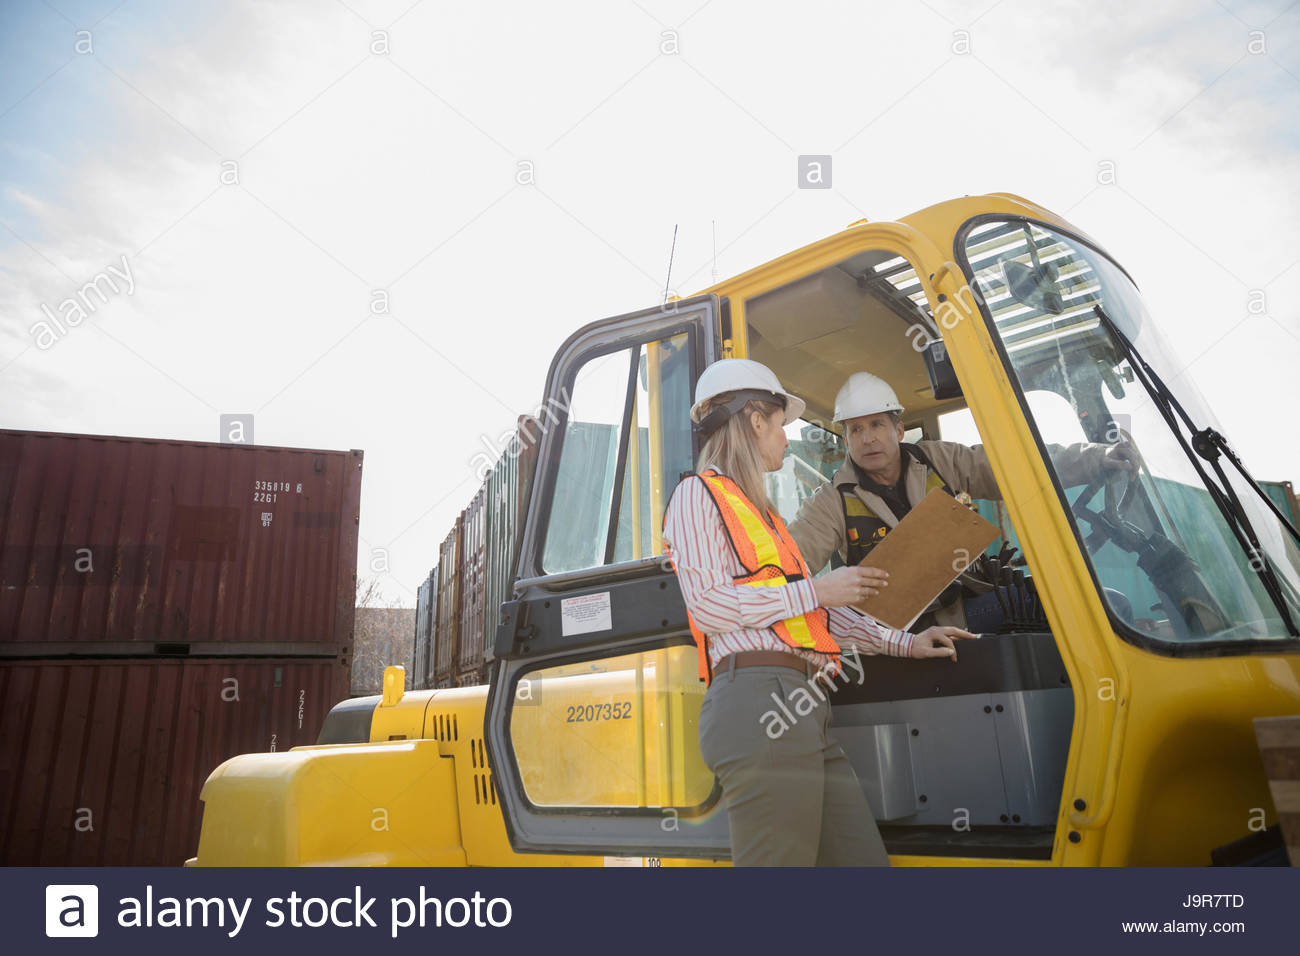 Female foreman with clipboard and forklift driver talking in sunny industrial container yard - Stock Image